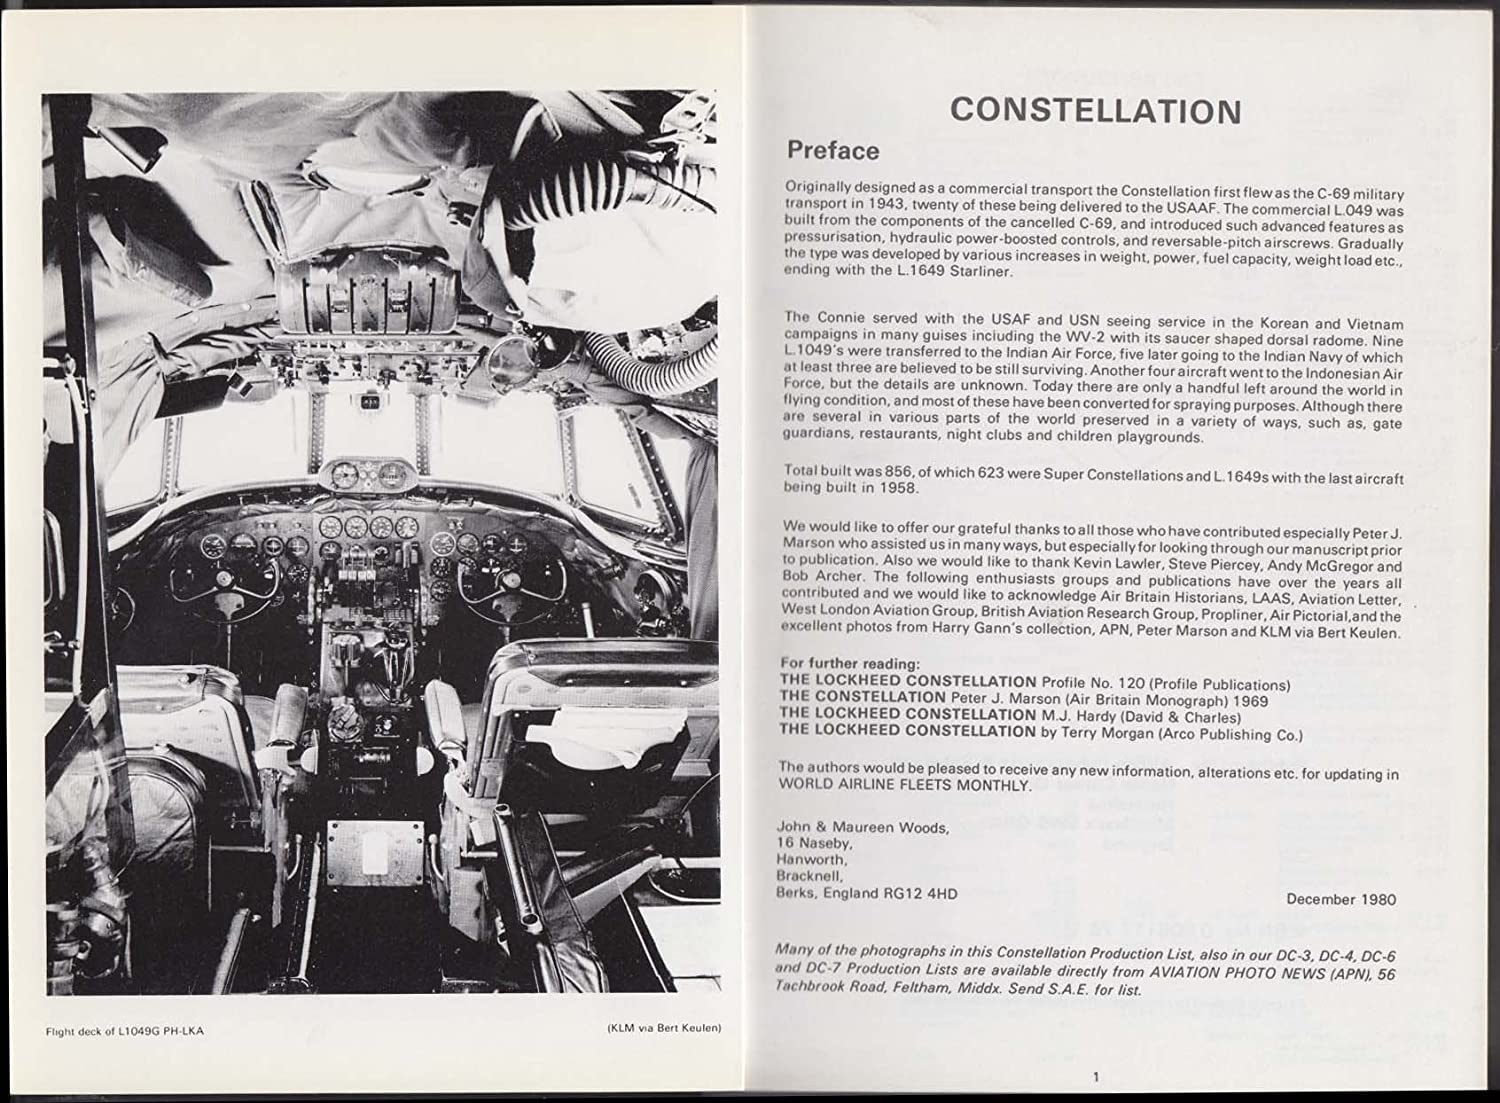 John & Maureen Woods: Lockheed Constellation Production List 1980 at